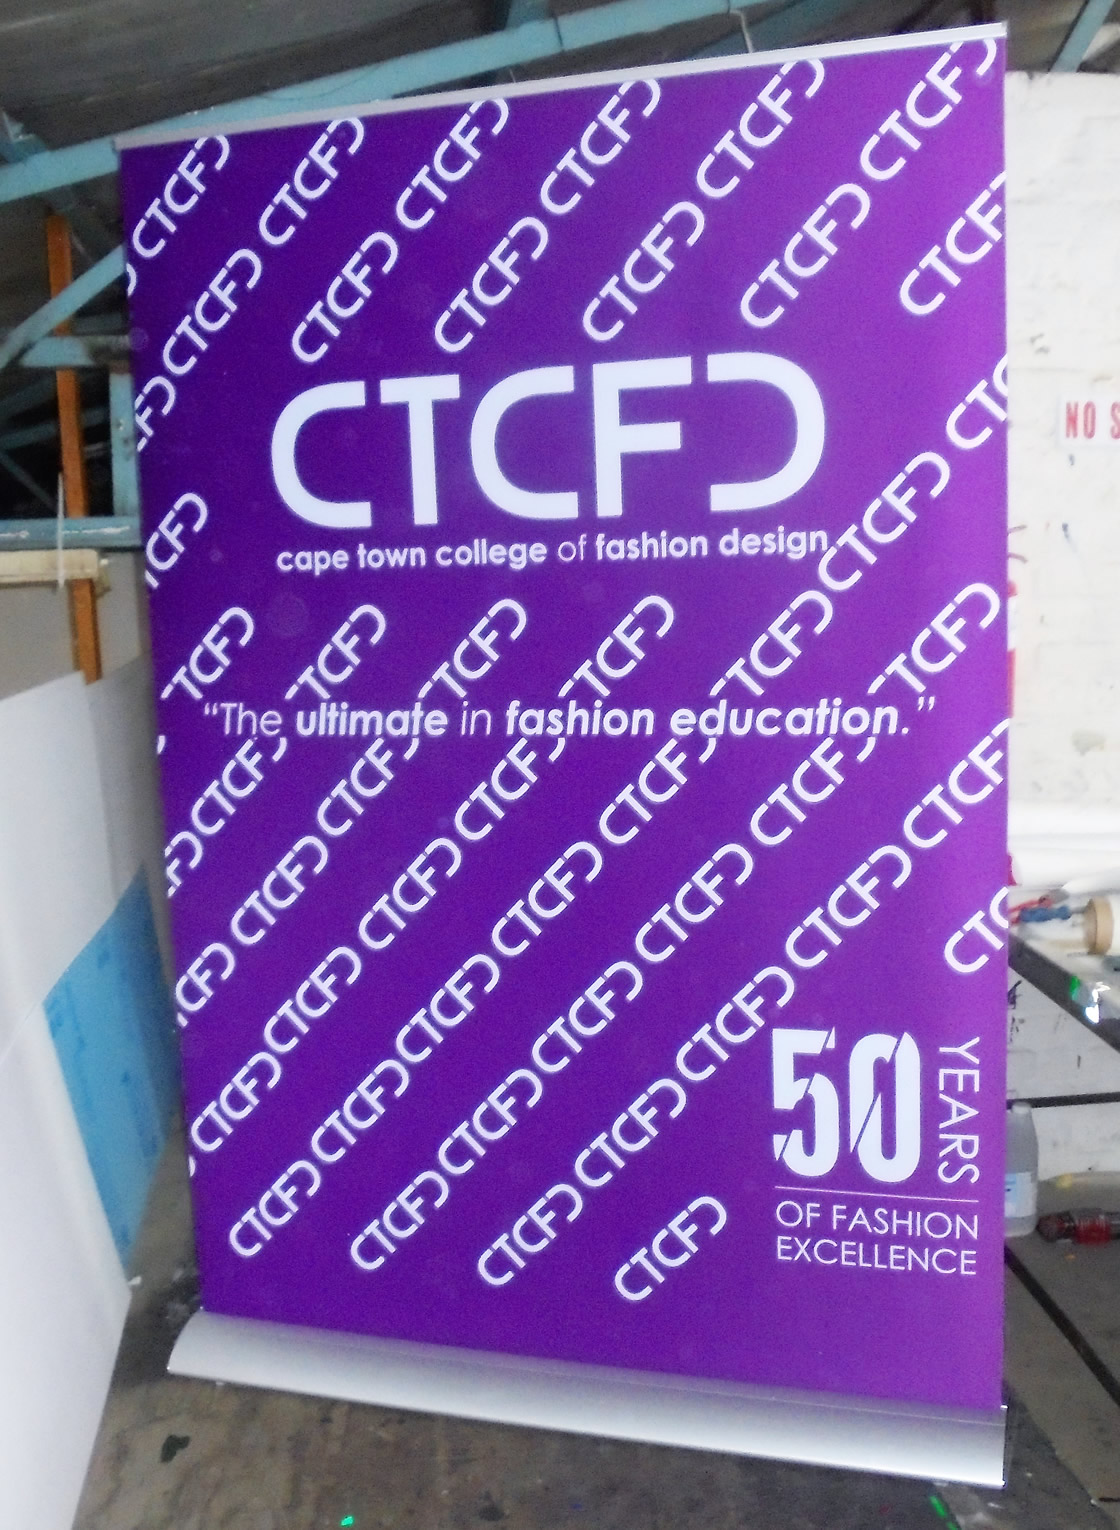 This is an example of a banner being used to advertise the Cape Town College of Fashion Design, by Vye Graphics.